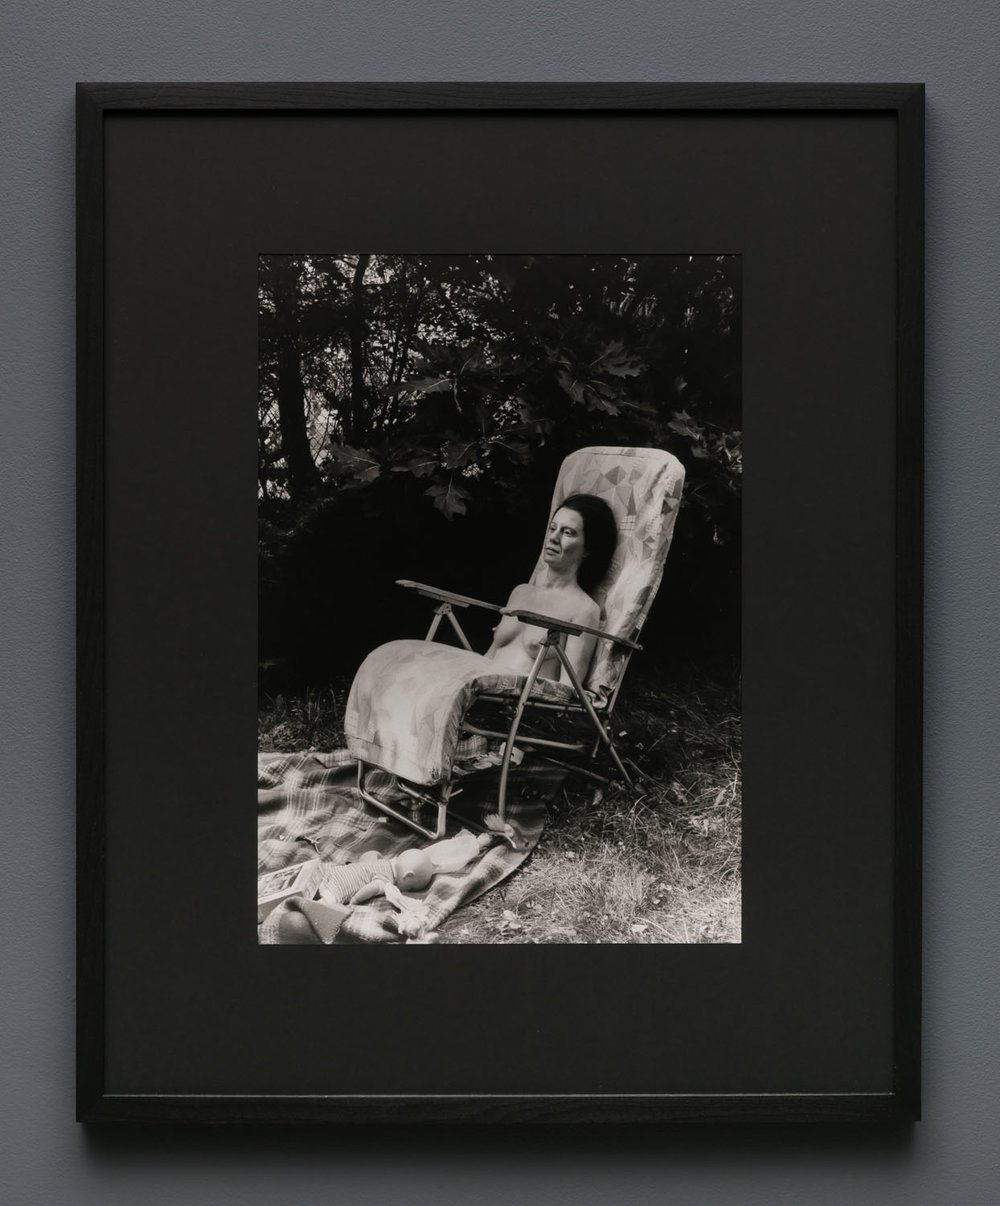 Aneta Grzeszykowska   Mama #36 , 2018  Silver gelatin print  Hand printed by the Artist  19.625 x 14.145 inches  29.5 x 24 inches (framed)  Edition of 5 + I A.P.